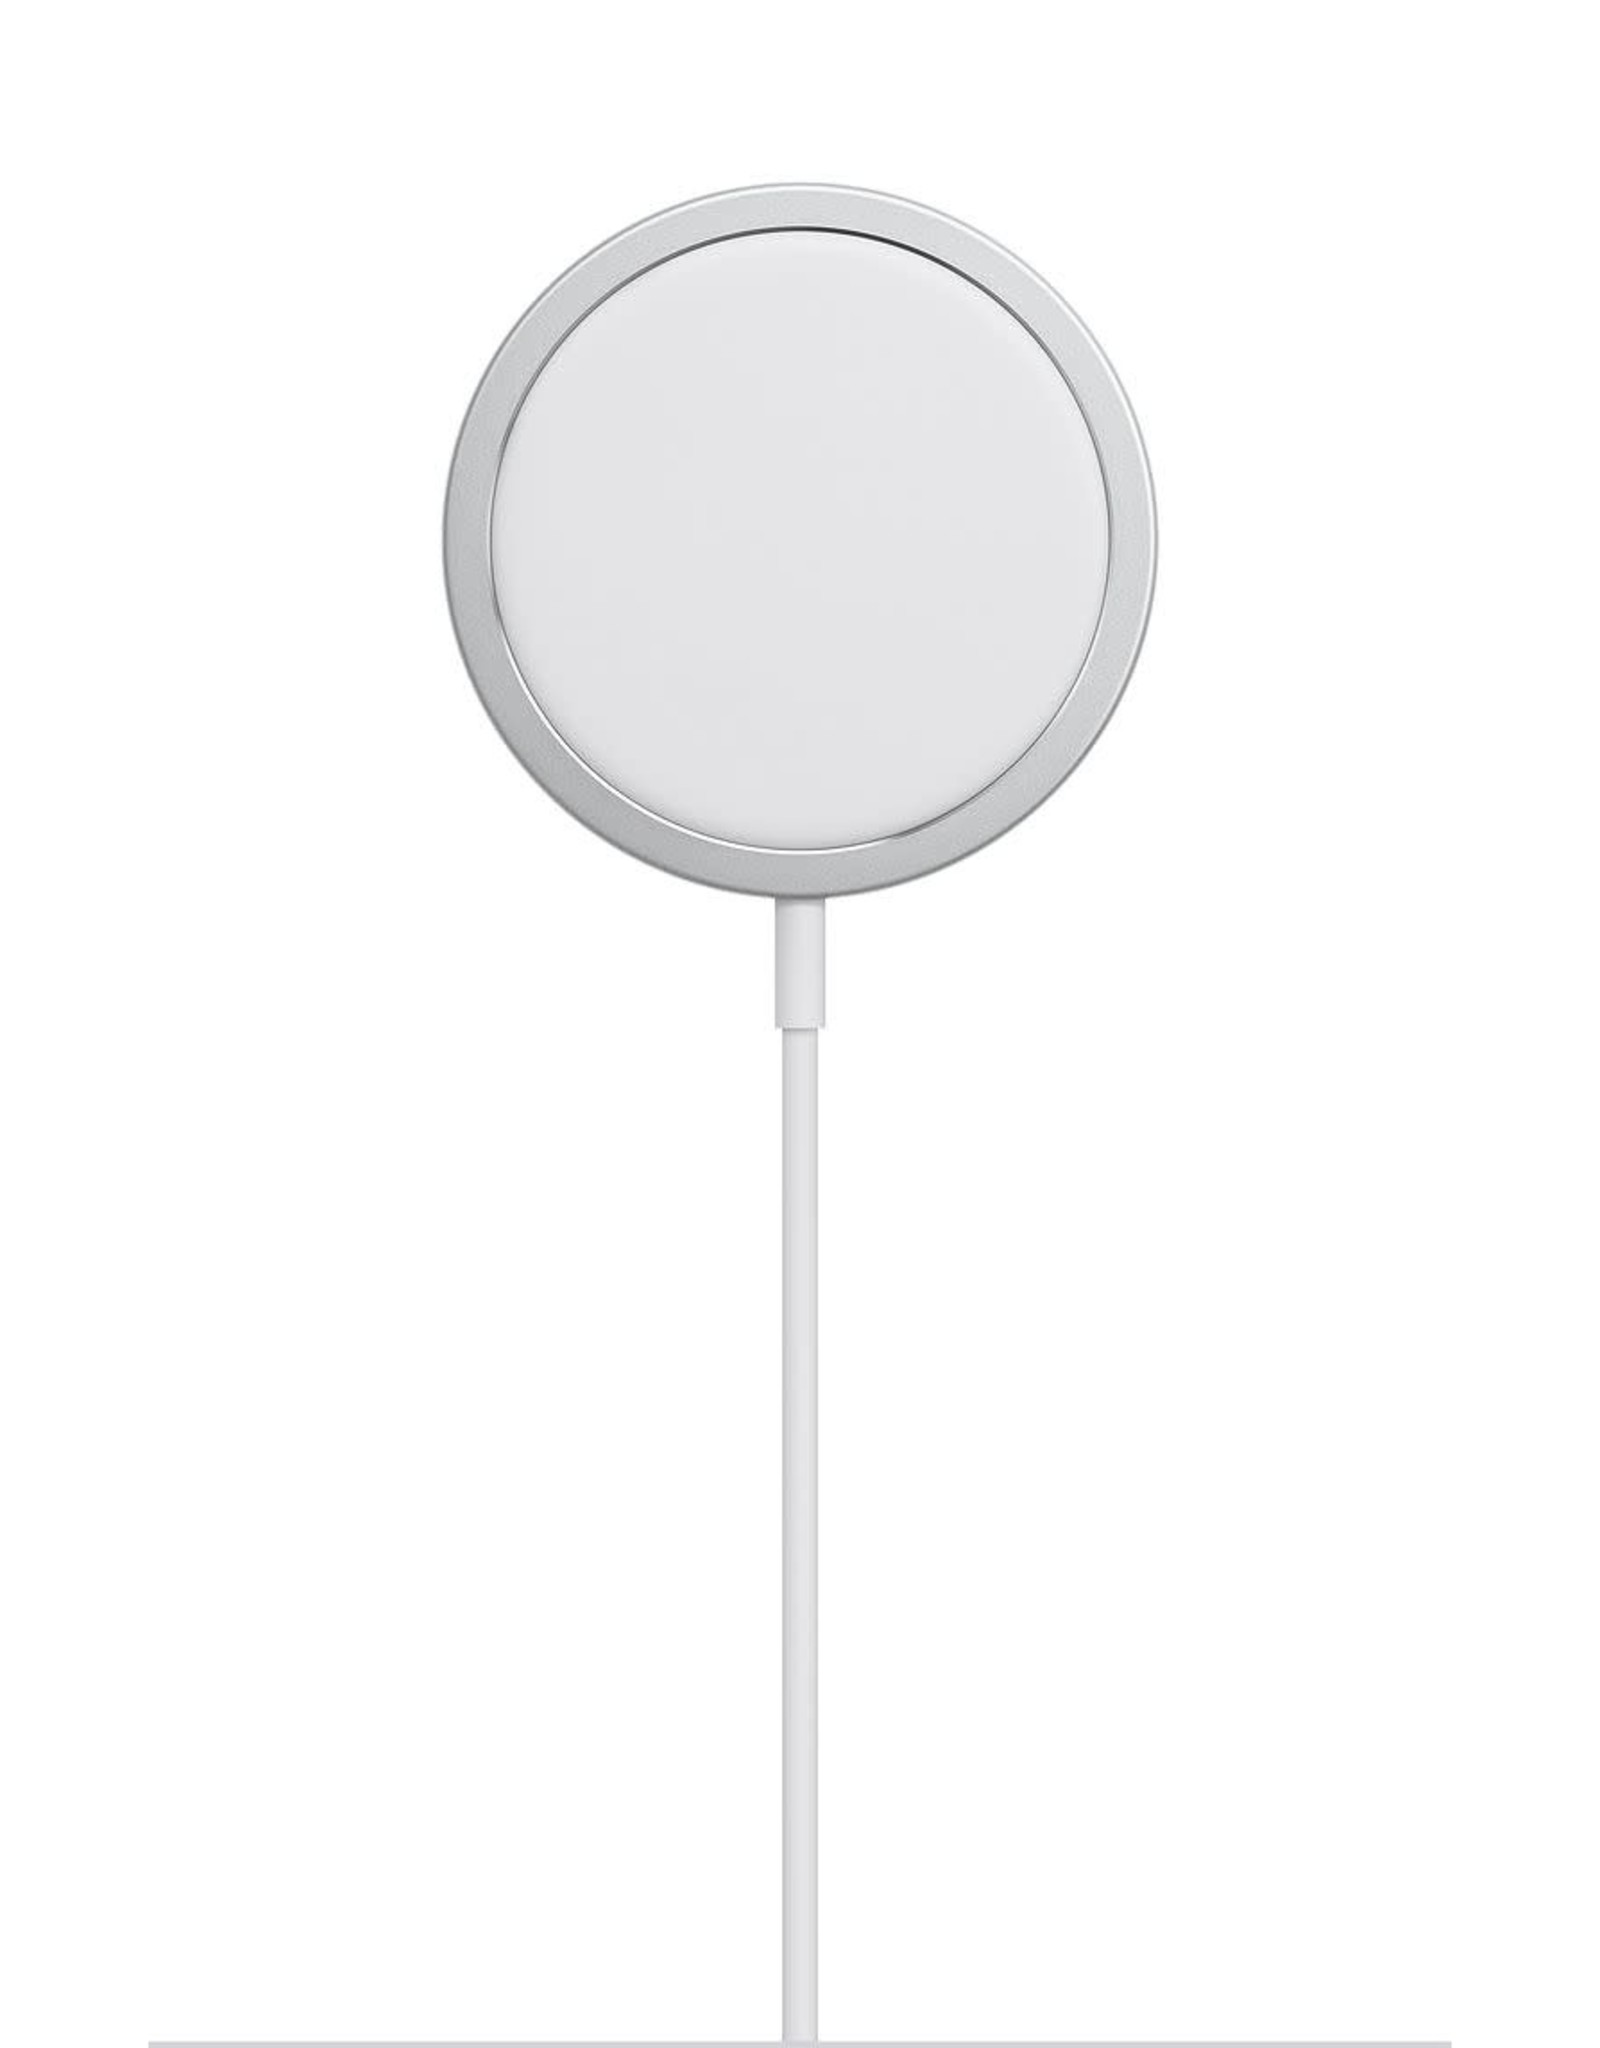 Apple Apple MagSafe Wireless Charger